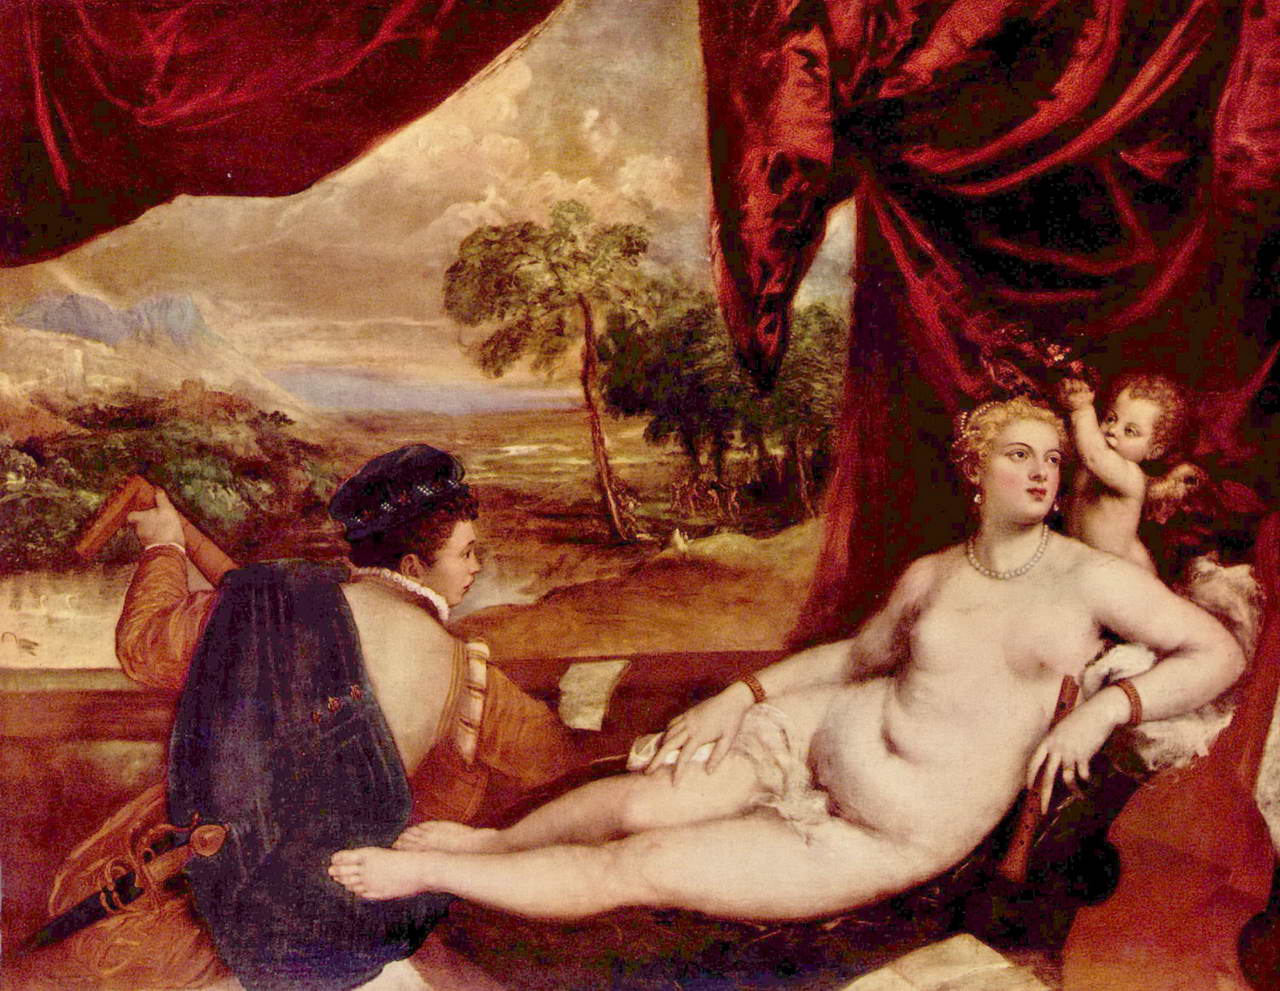 an analysis of the topic of the meaning of hew gaze and the venus of urbino by titian Edouard manet (1832-1883) olympia 1863 oil on canvas such as titian's venus of urbino, goya's maja desnuda, and the theme of the odalisque with her black slave.